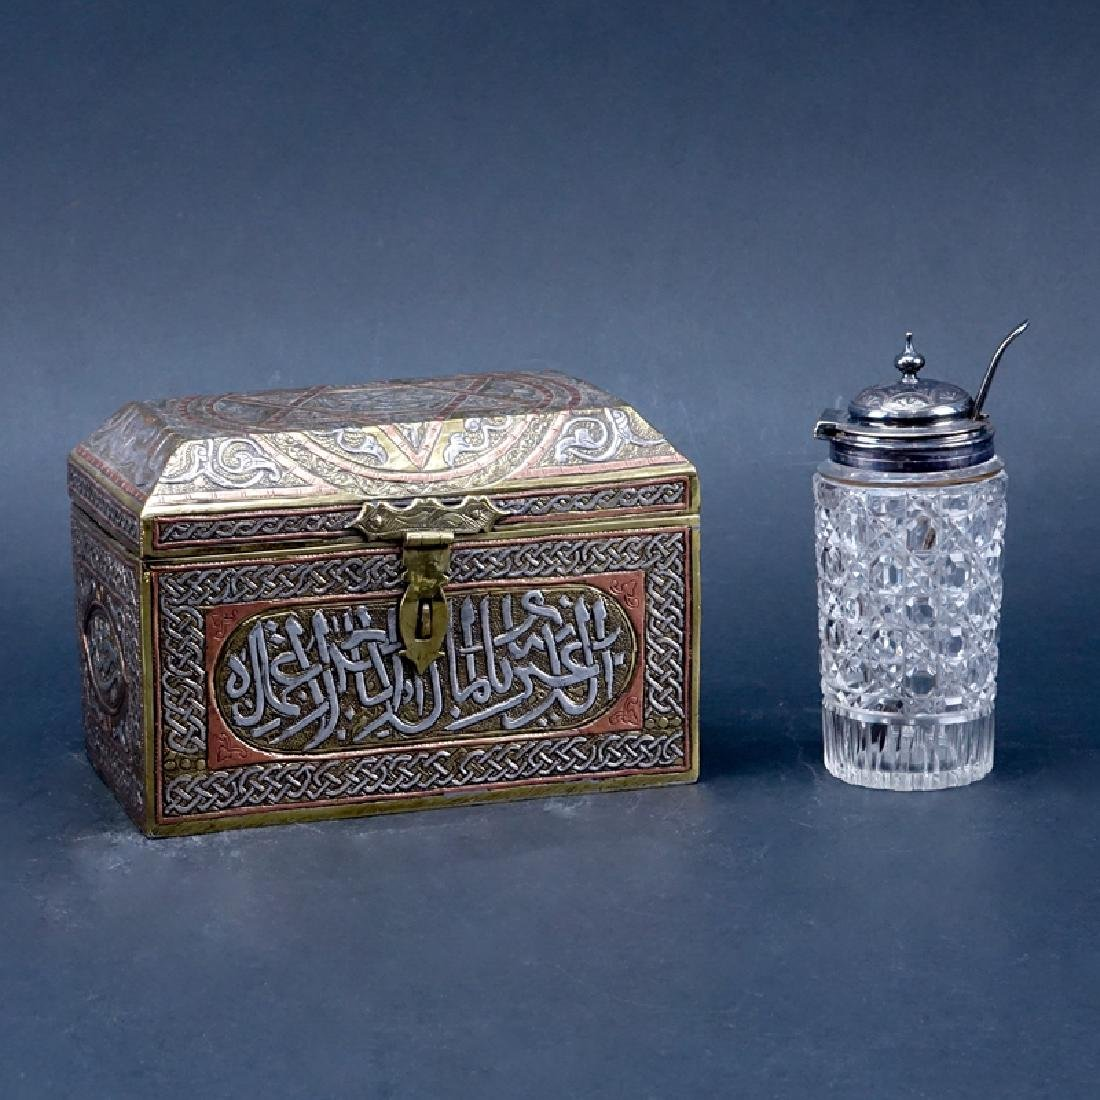 Judaica Mixed Metal Alms Box - Casket. Decorated with a